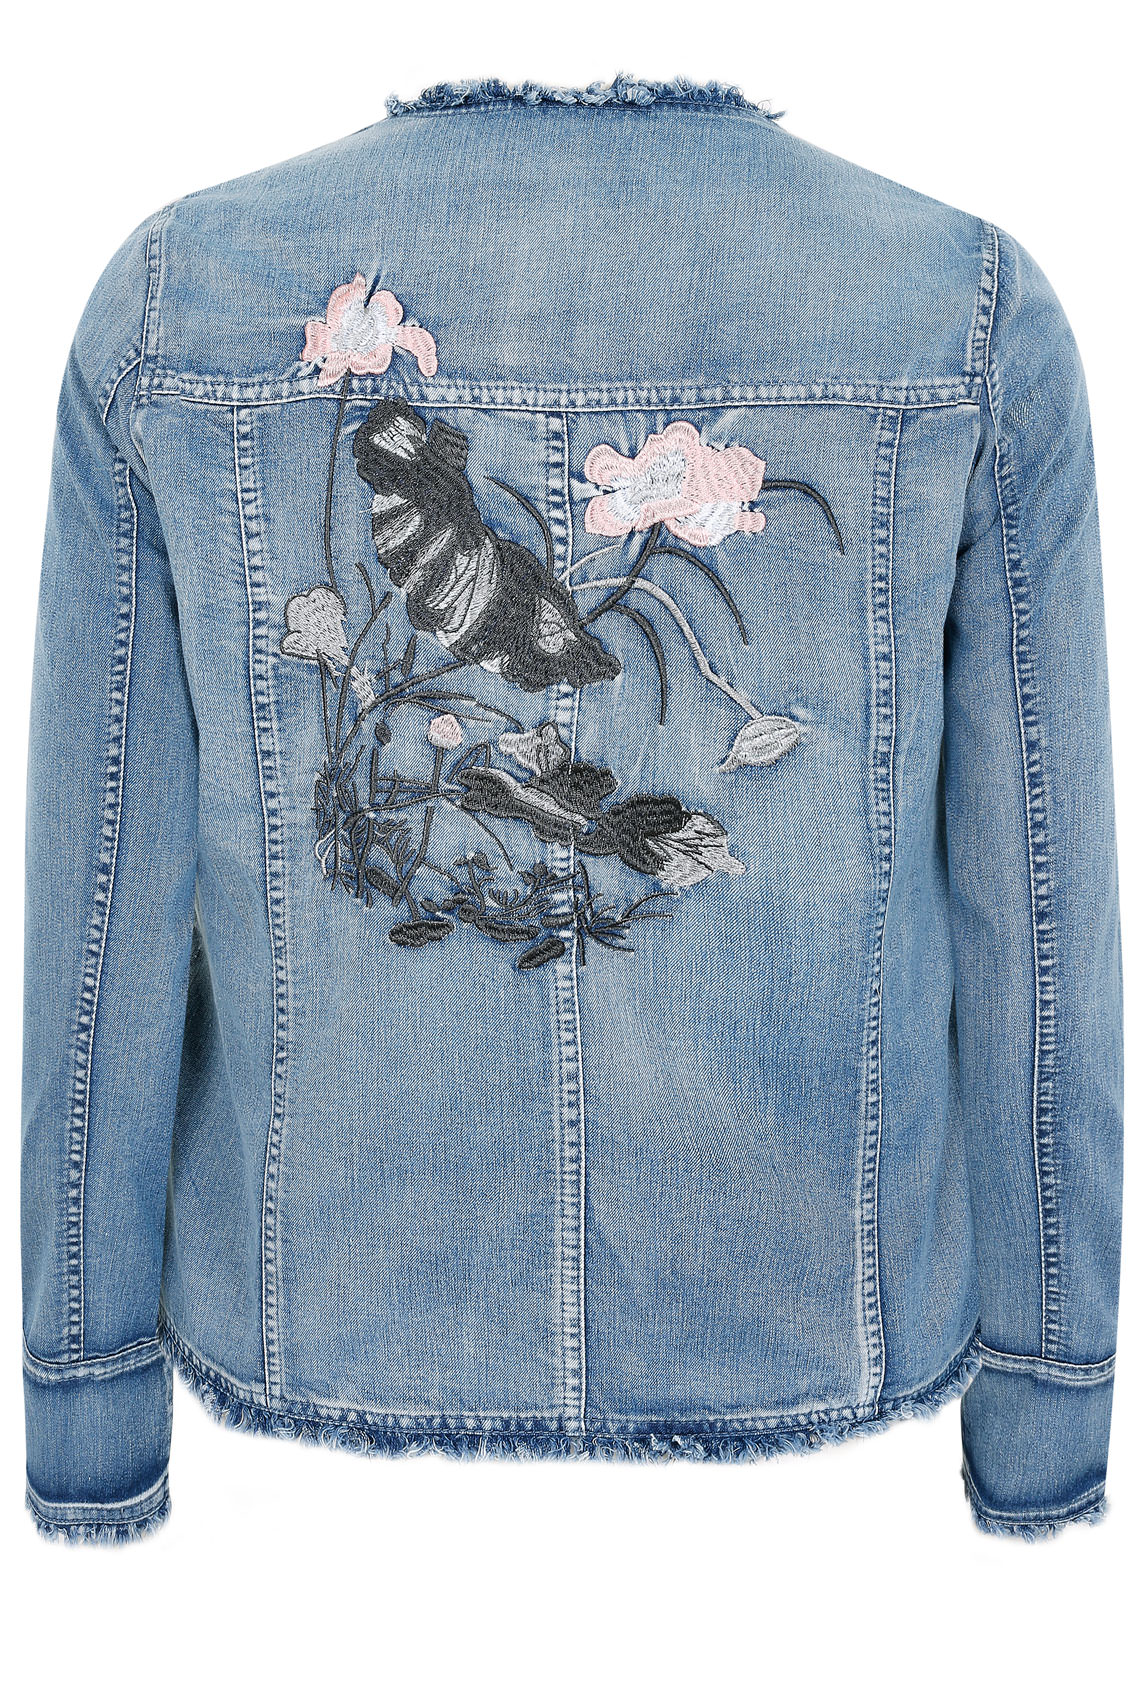 Paprika denim embroidered jacket with frayed raw edge